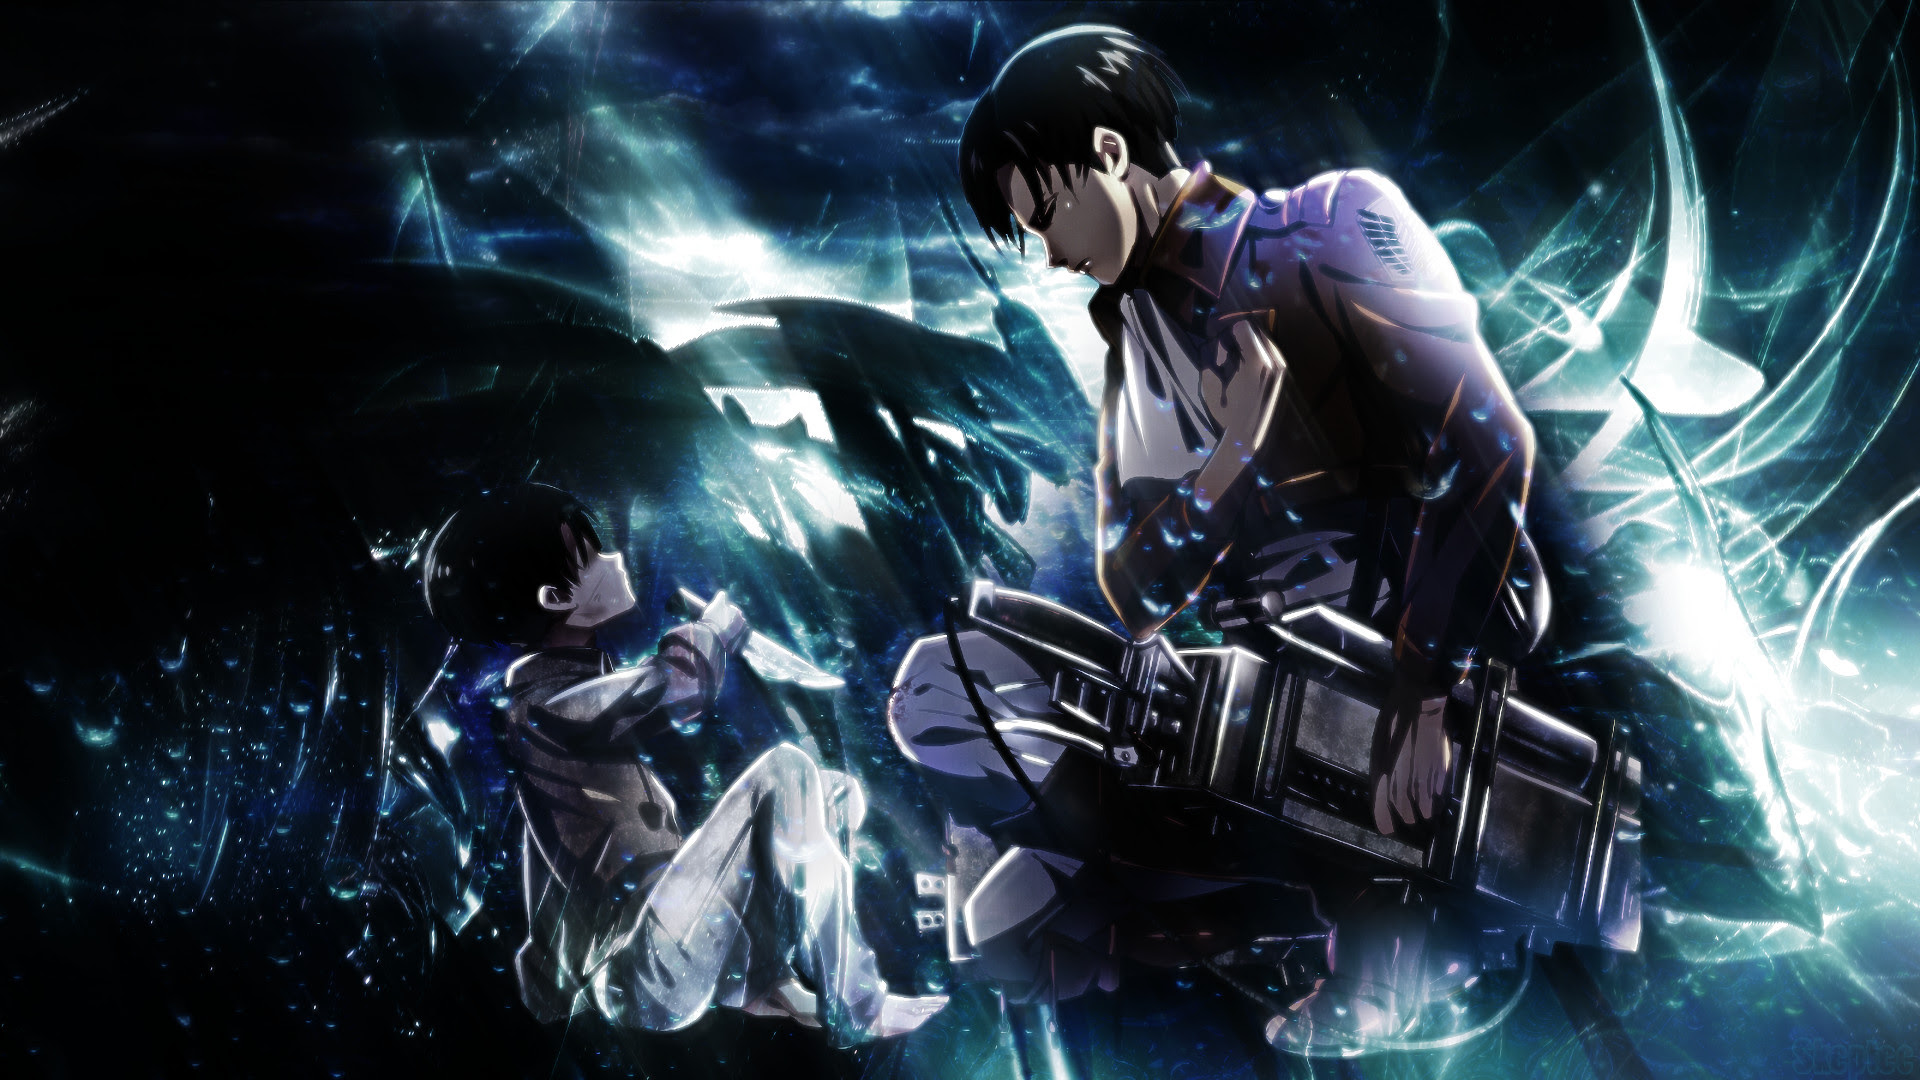 Anime Attack On Titan Levi Wallpaper Anime Wallpapers